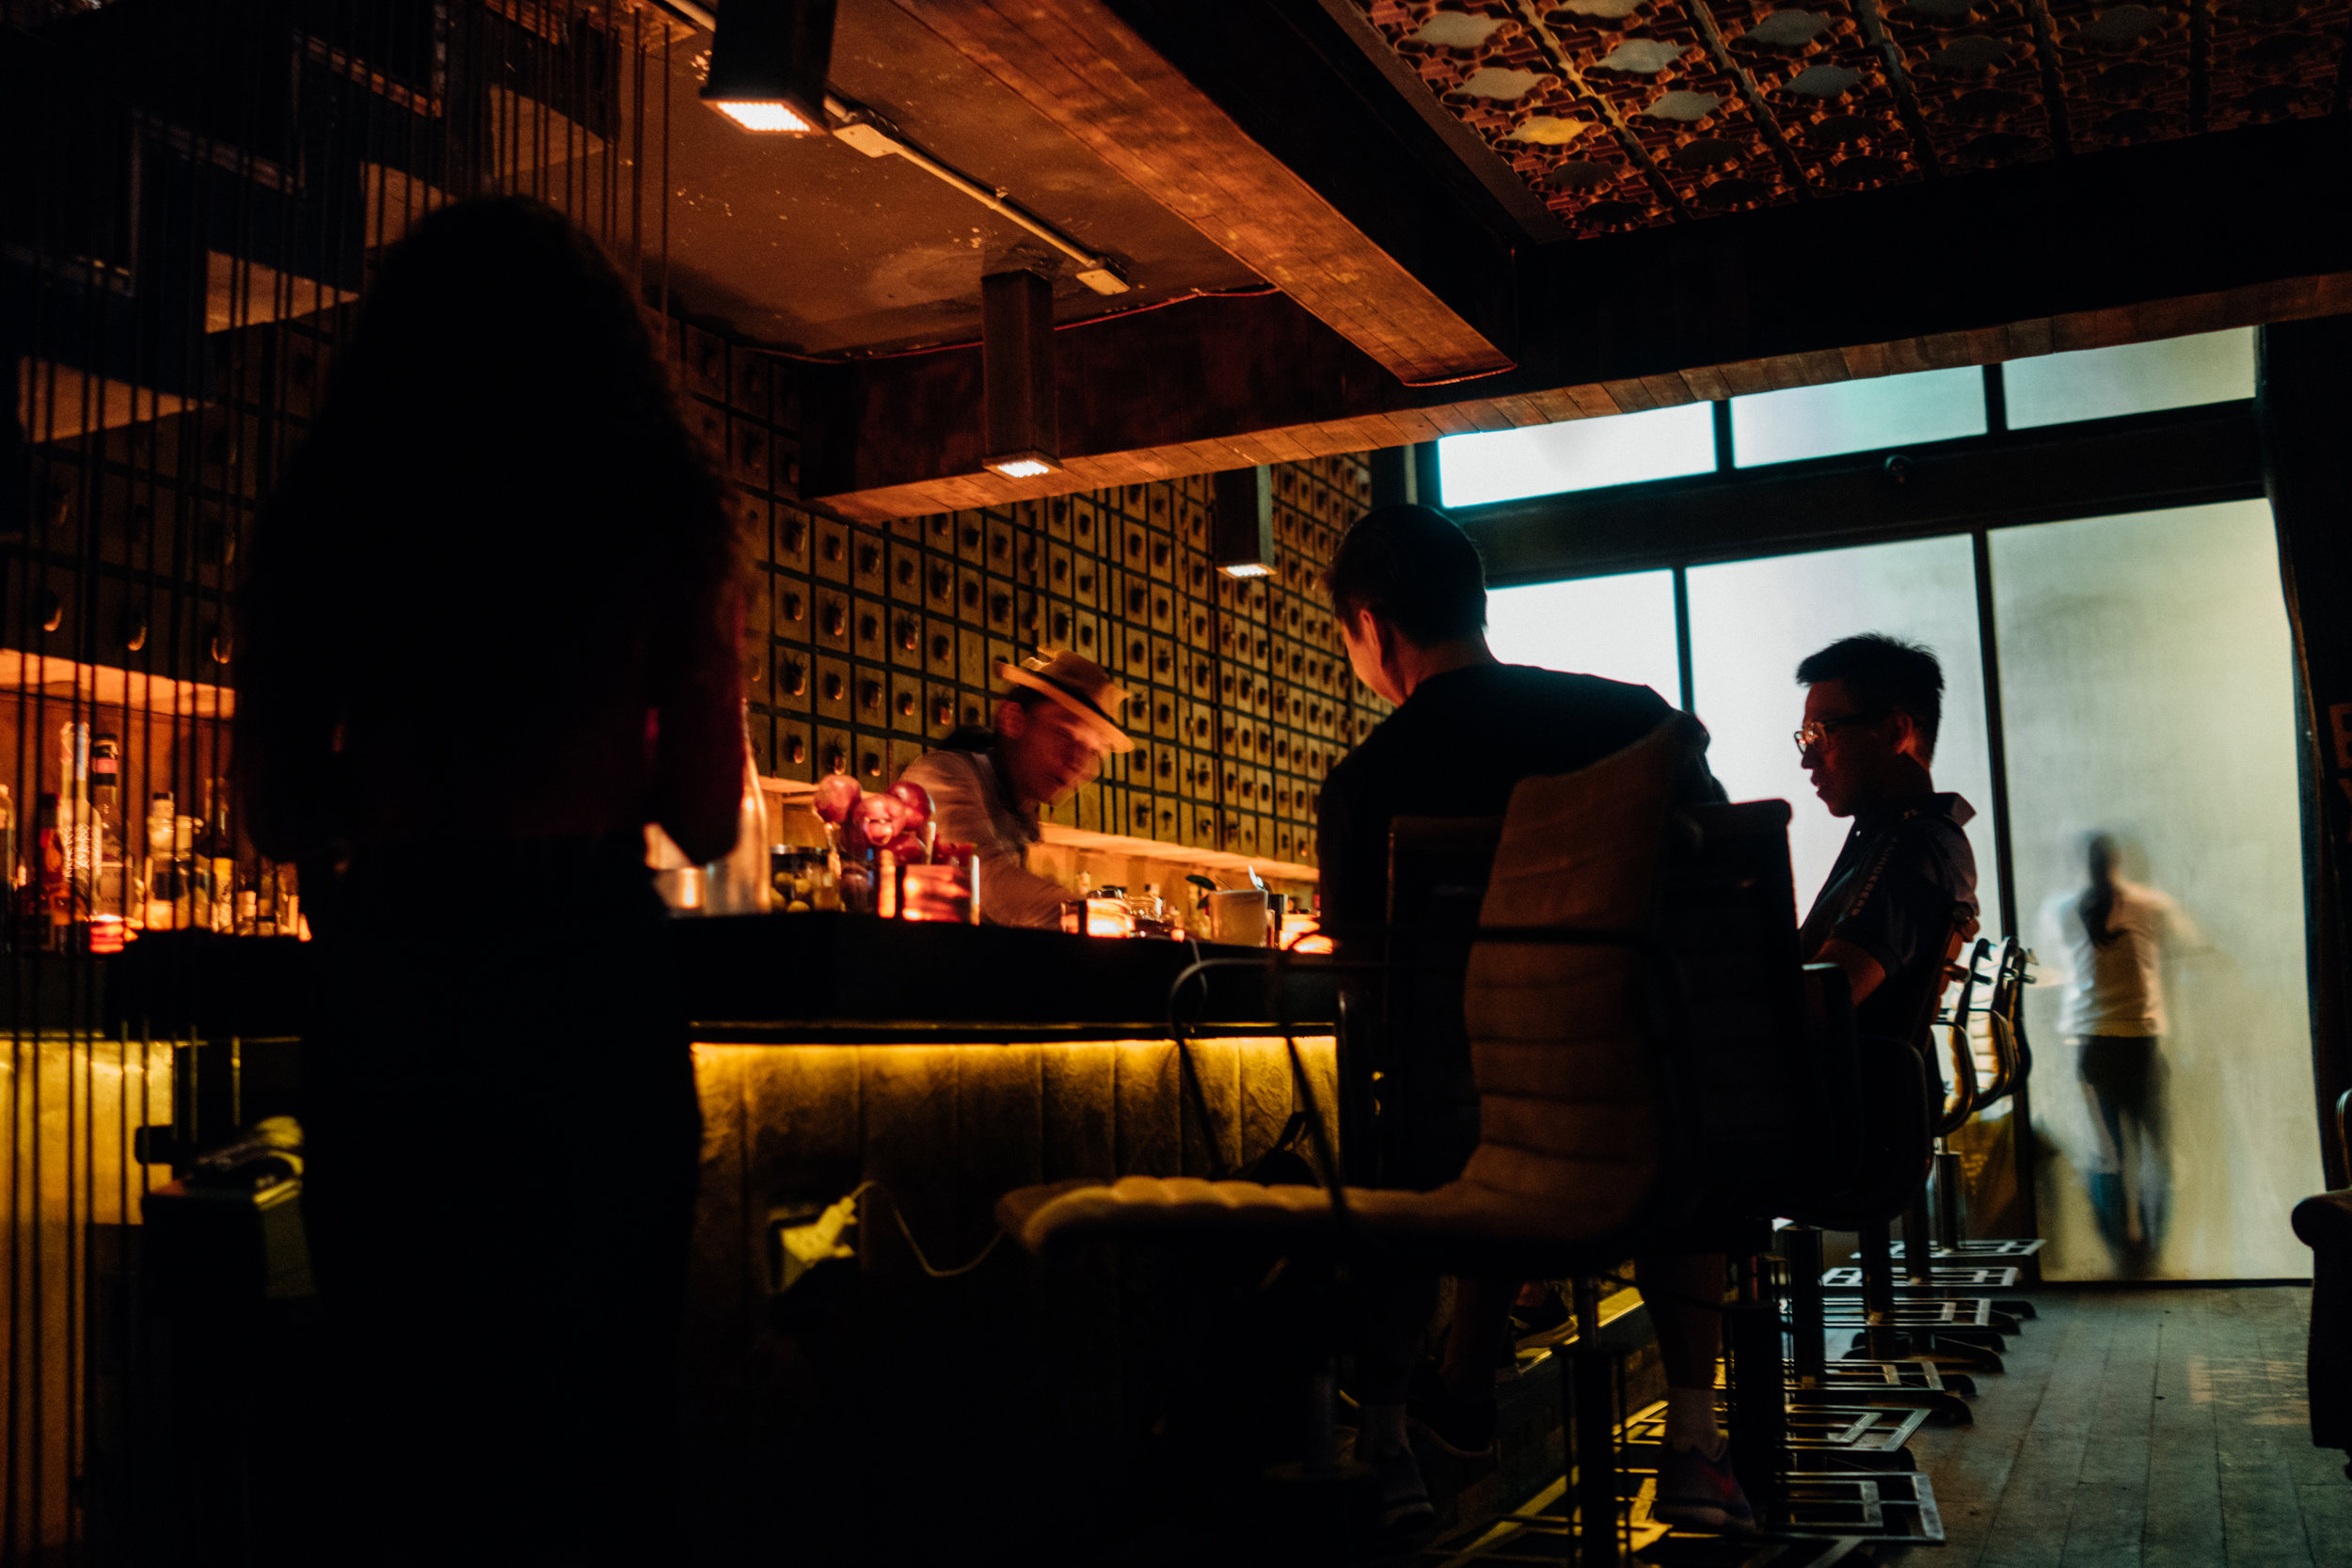 The bar at J. Boroski Mixology in Bangkok, as seen from our plush leather chairs